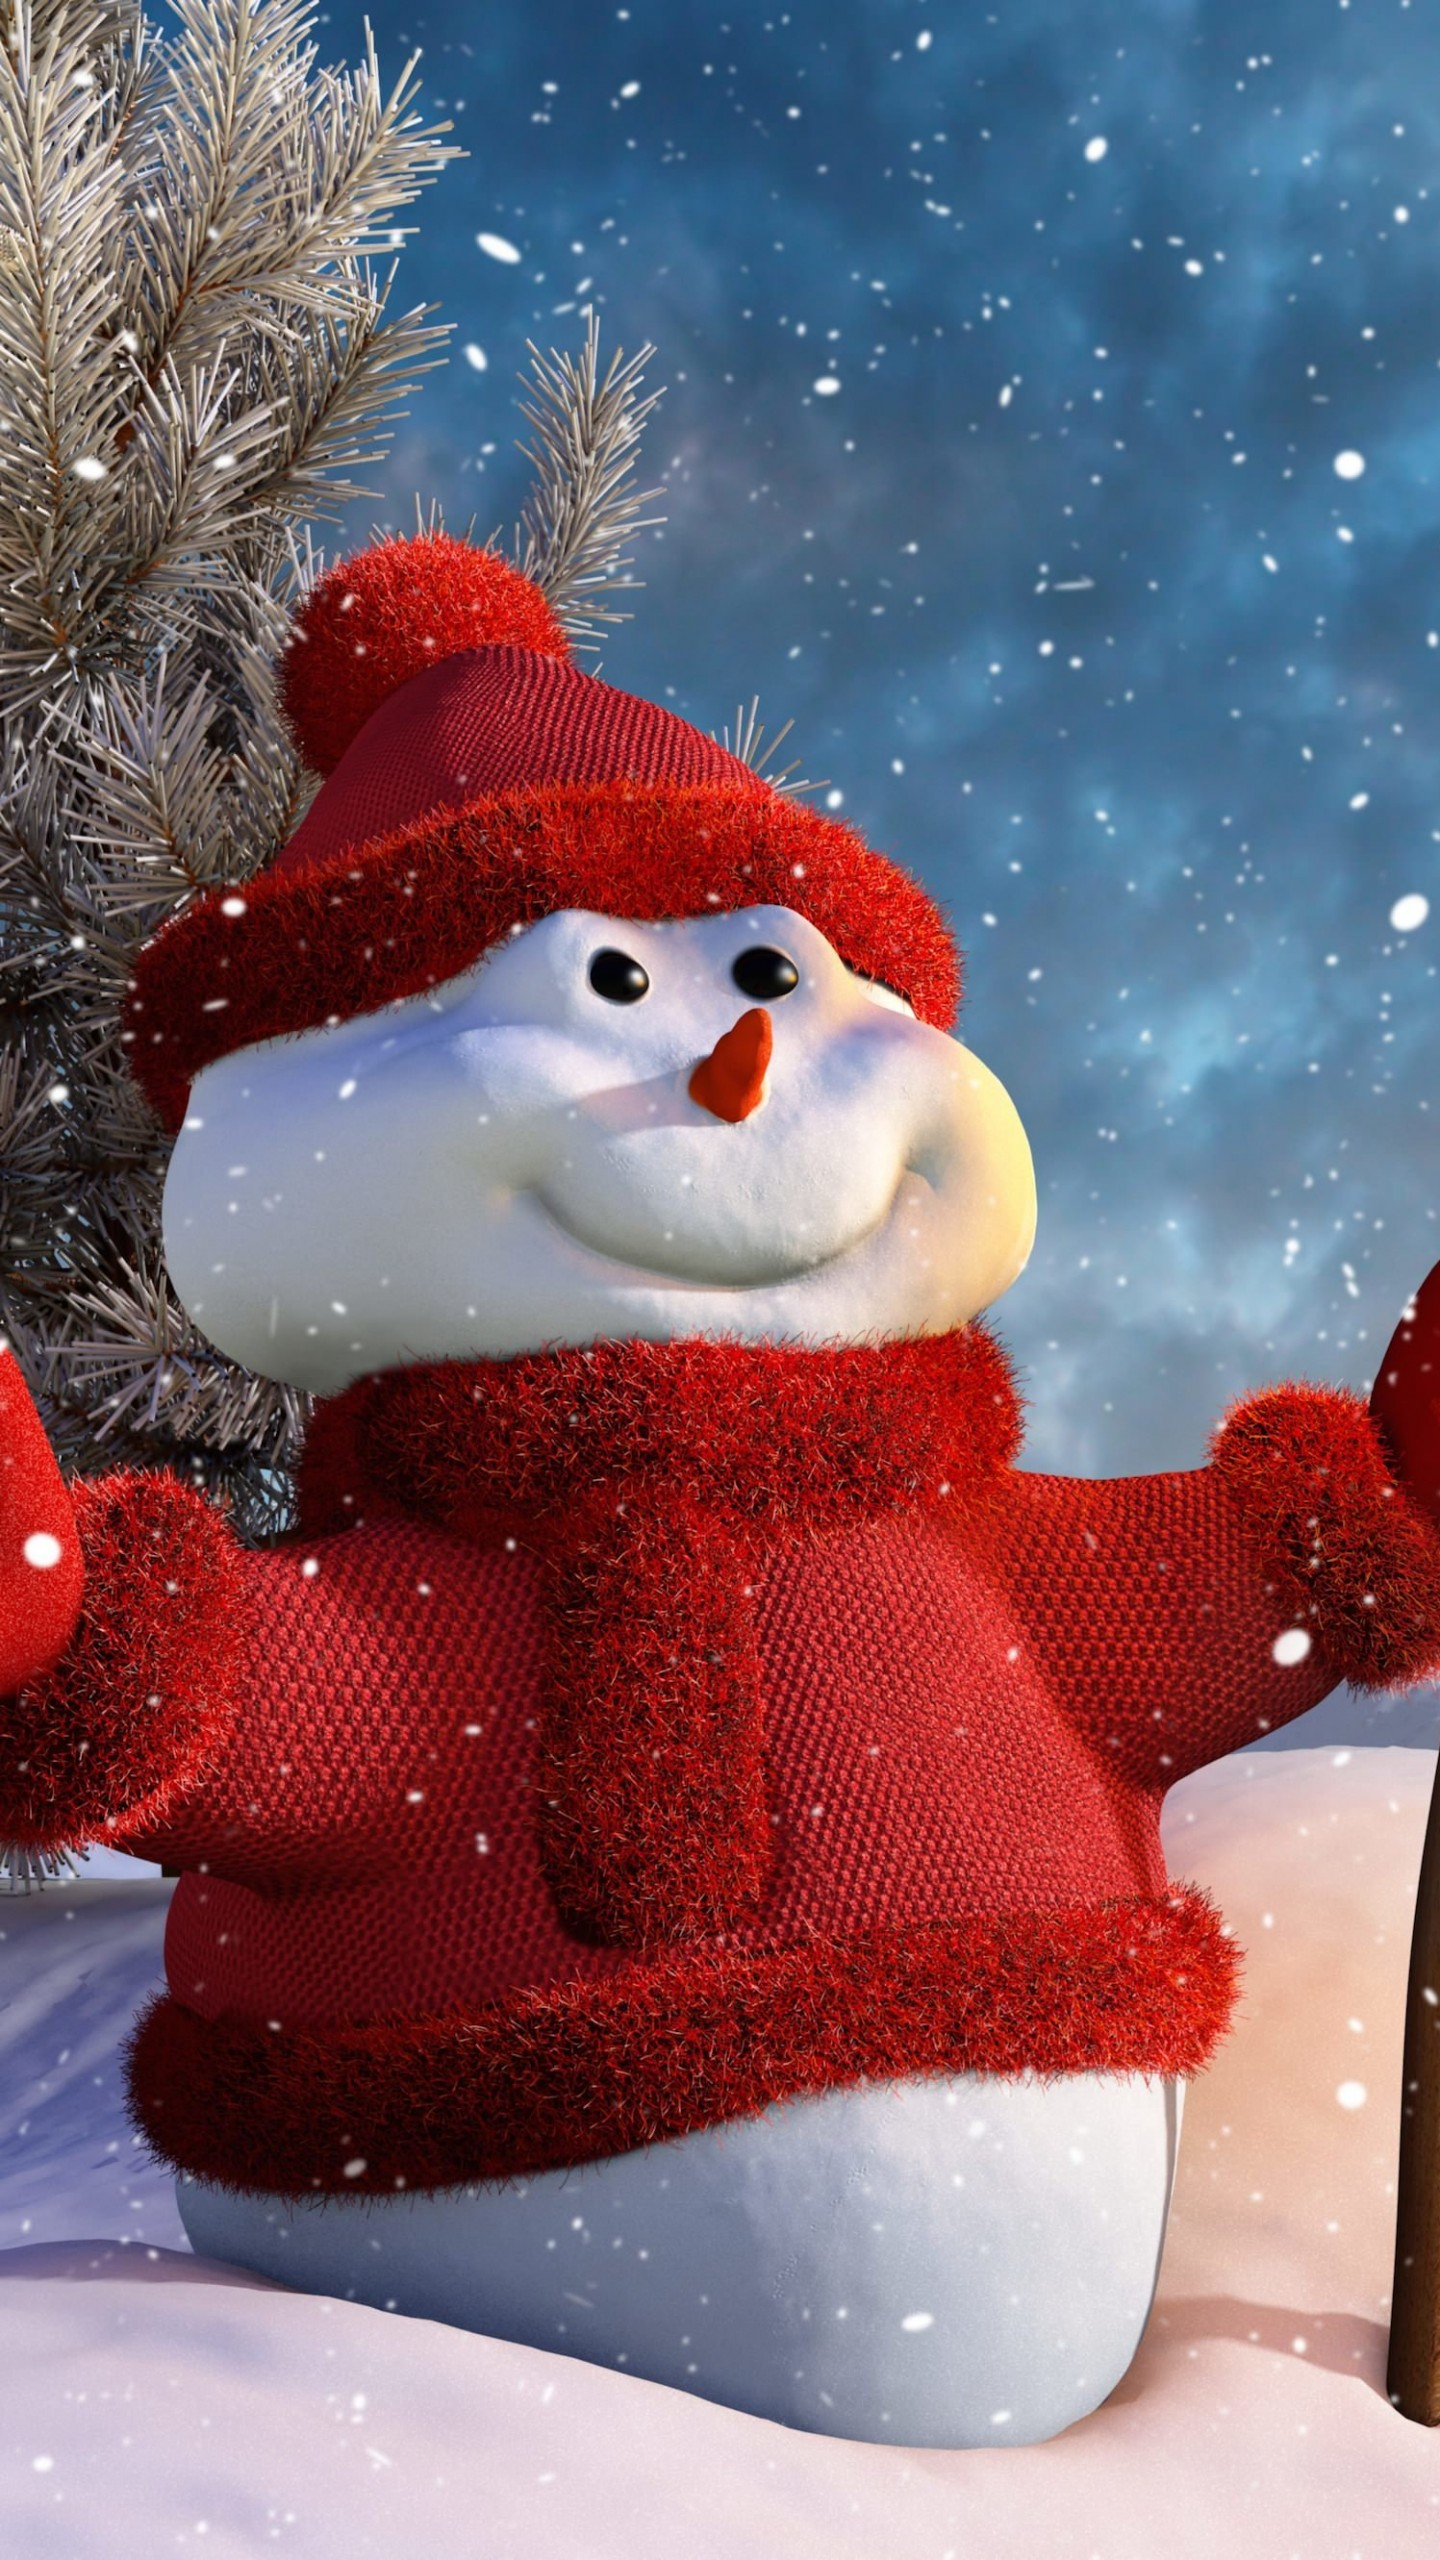 Christmas Snowman Wallpaper for SAMSUNG Galaxy S6